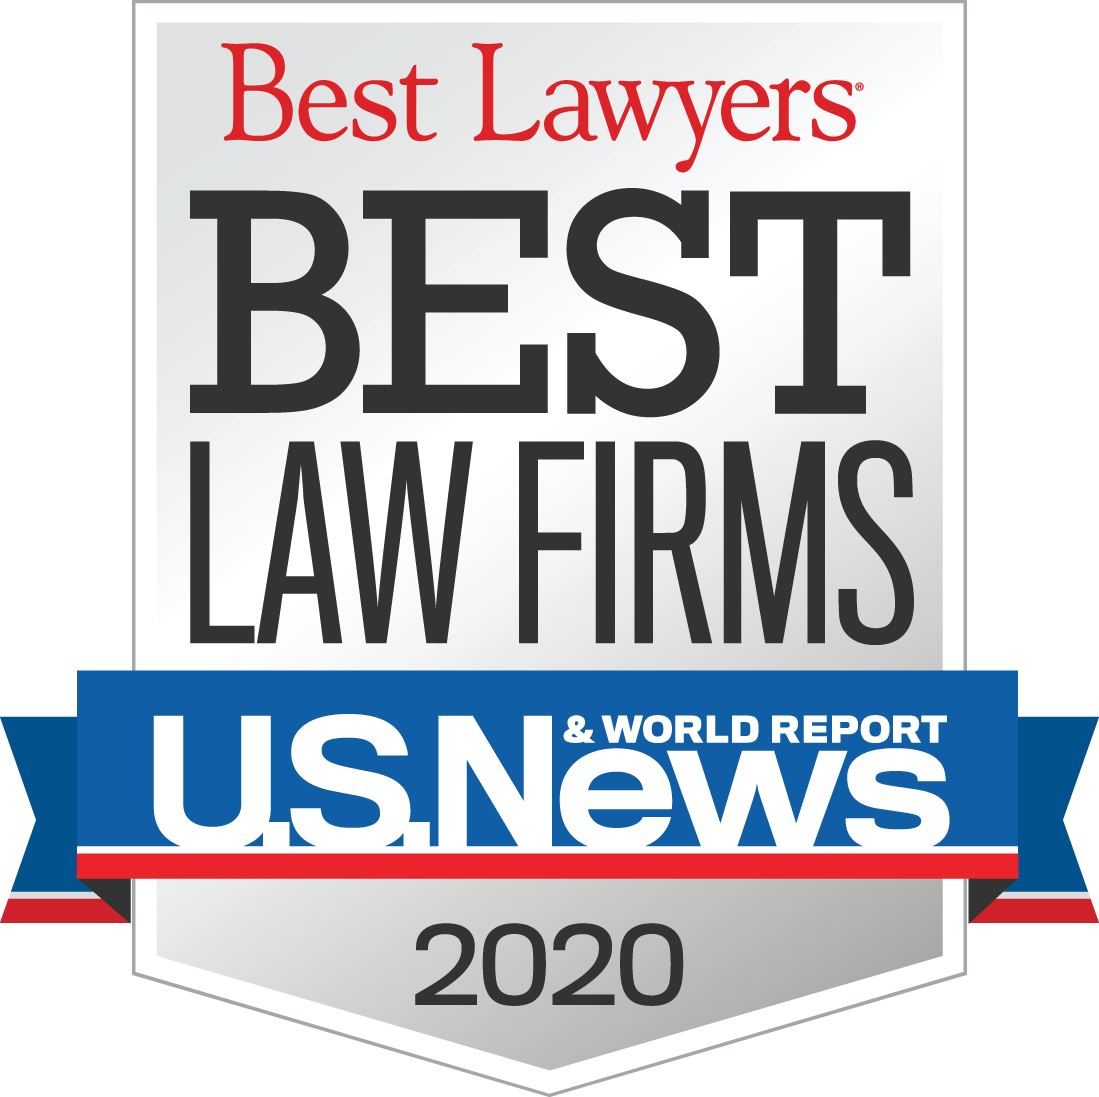 2020 Best Lawyers US News